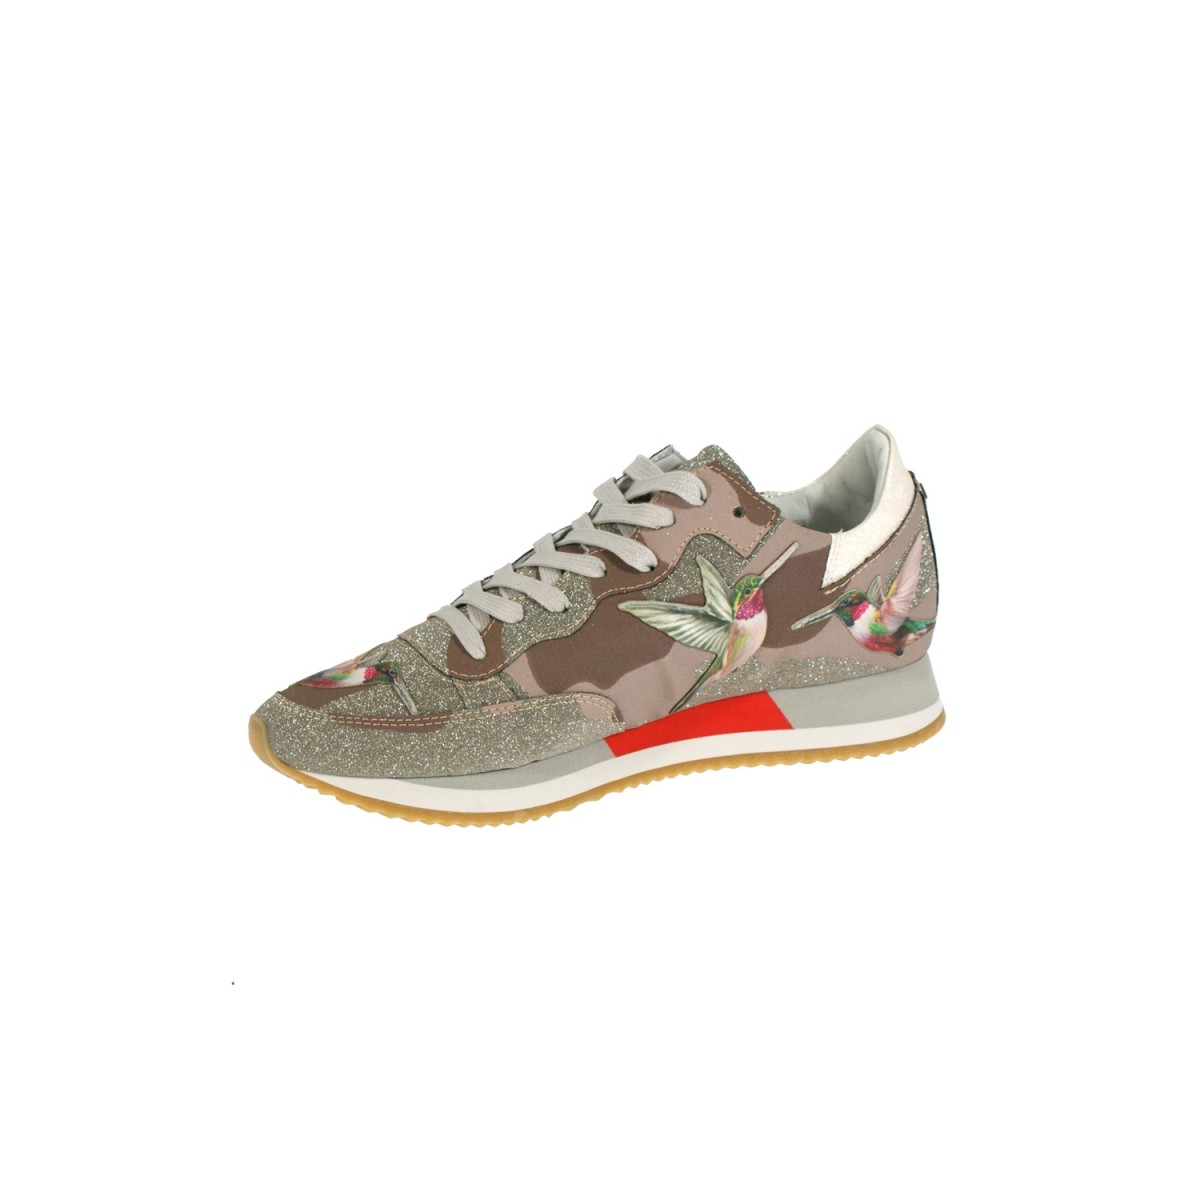 Philippe Model TBLD BG03 tropez Bright Bassa Donna-T.Birds Mud Colibri-35